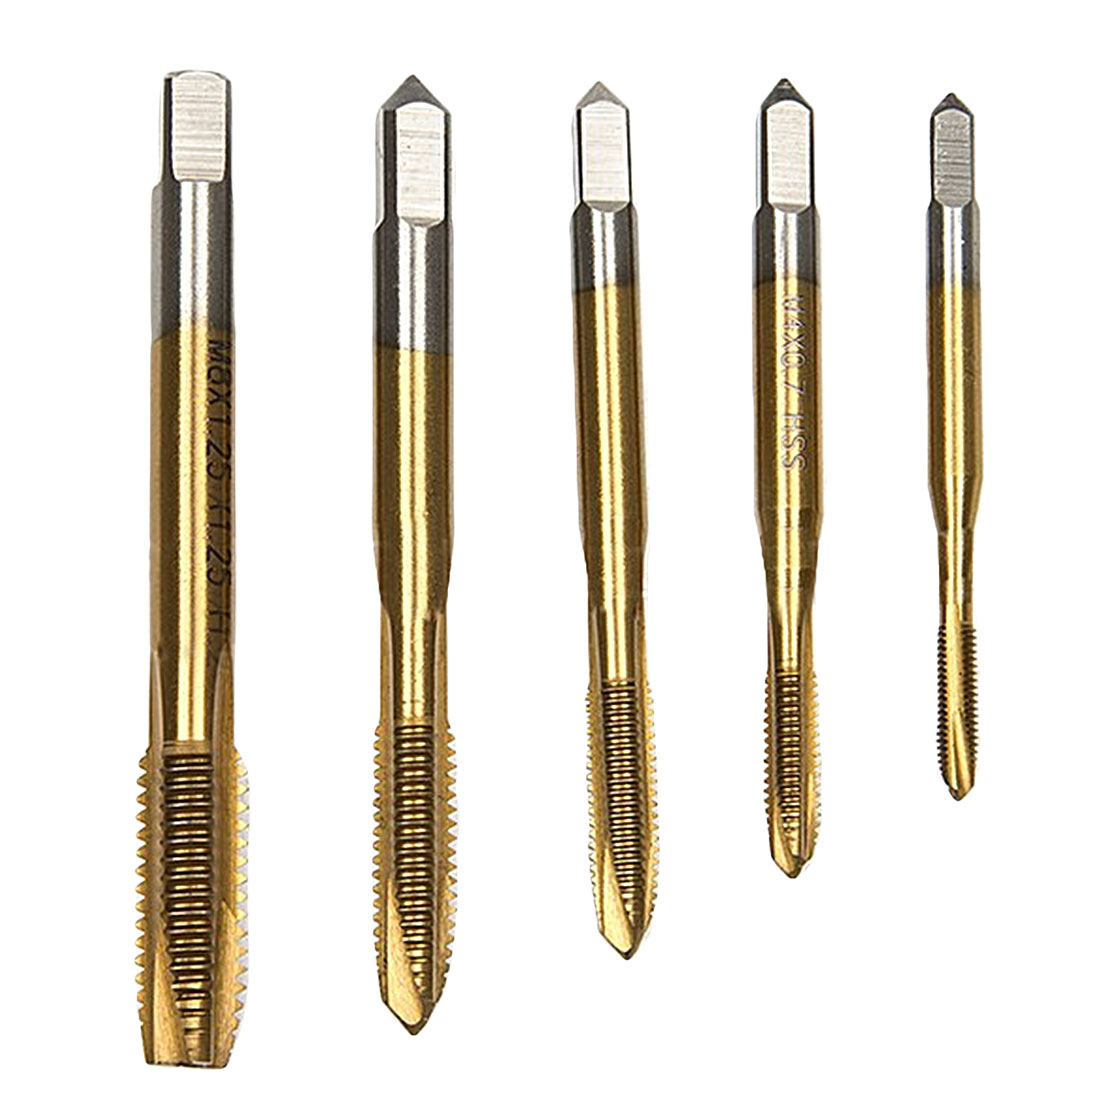 5pcs/set Titanium Machine Right Hand Tap Drill Spiral Fluted Machine Screw Tap 3 Flute M3 M4 M5 M6 M8 Spiral Pointed Taps